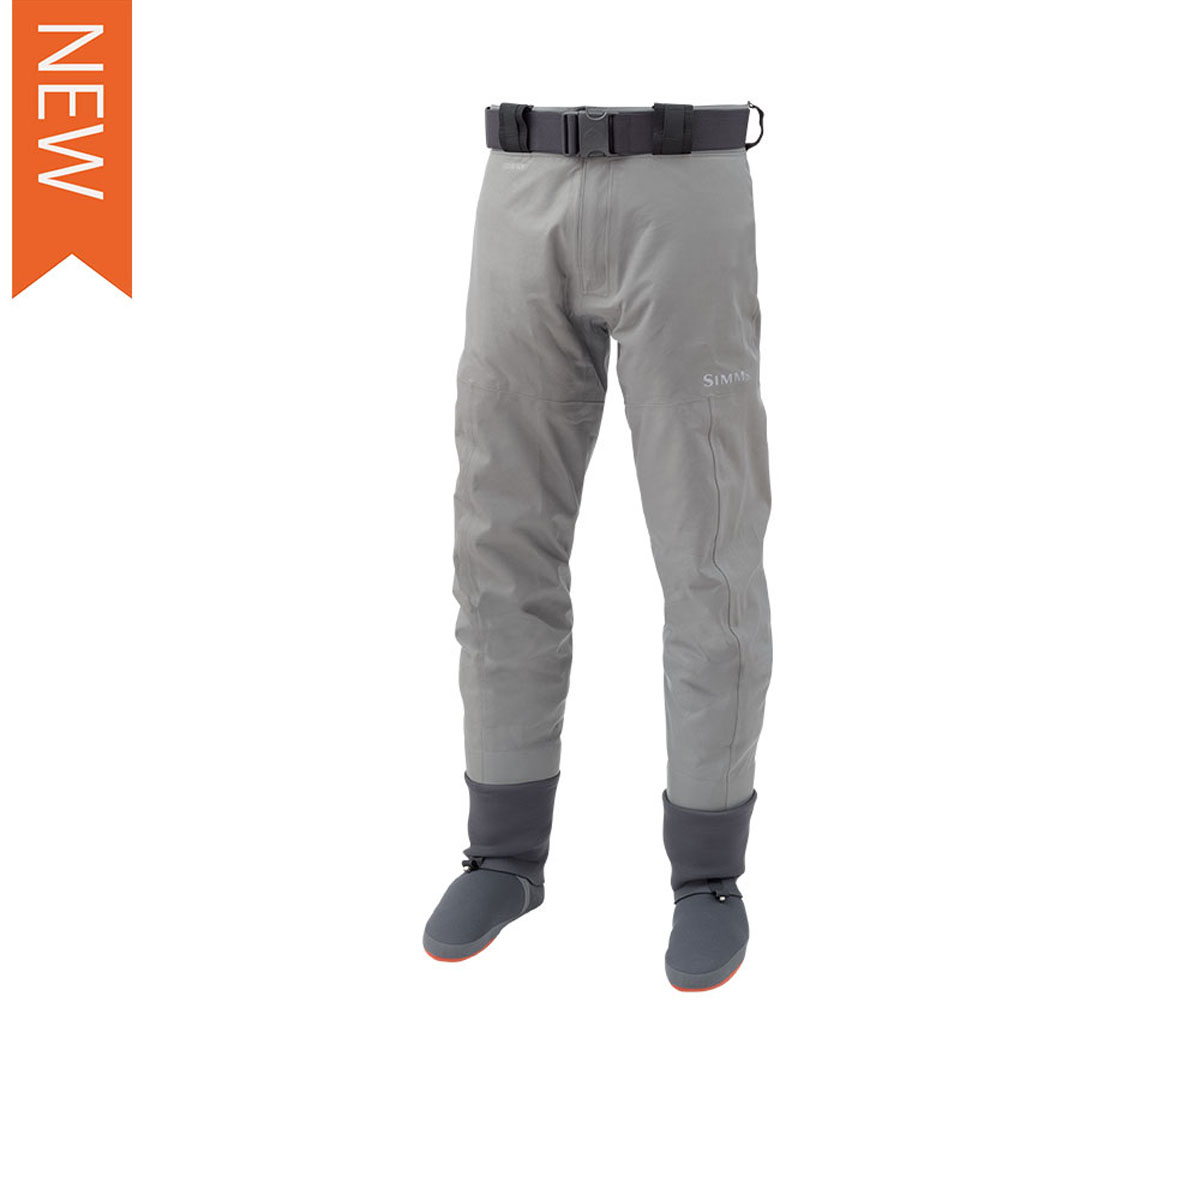 G3 GUIDE PANT(2018)